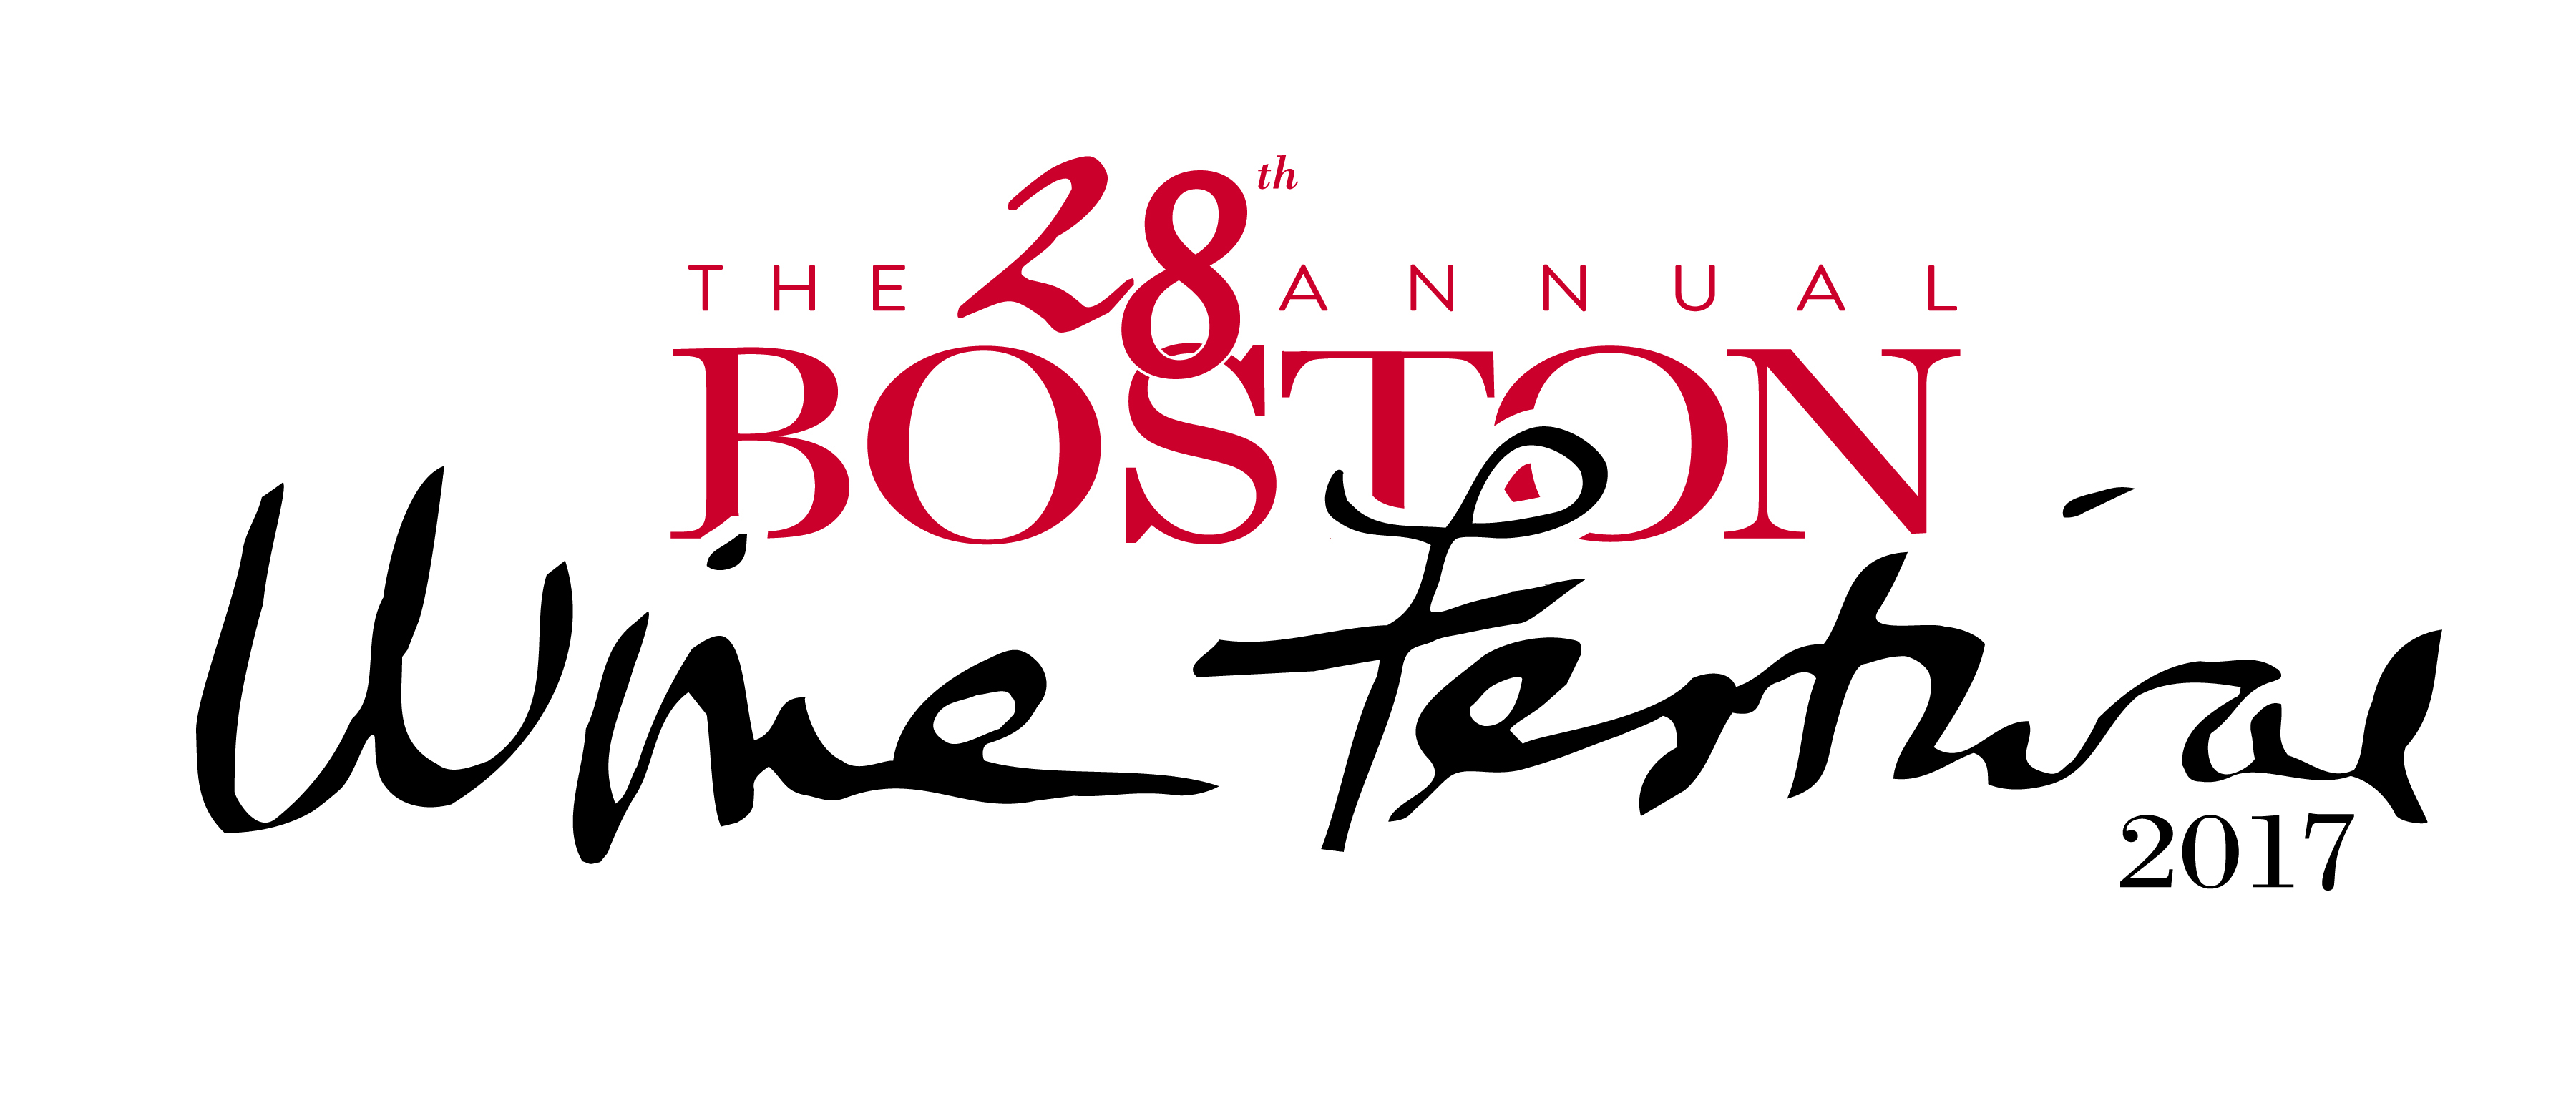 mediterranean reception as part of the boston wine festival at the